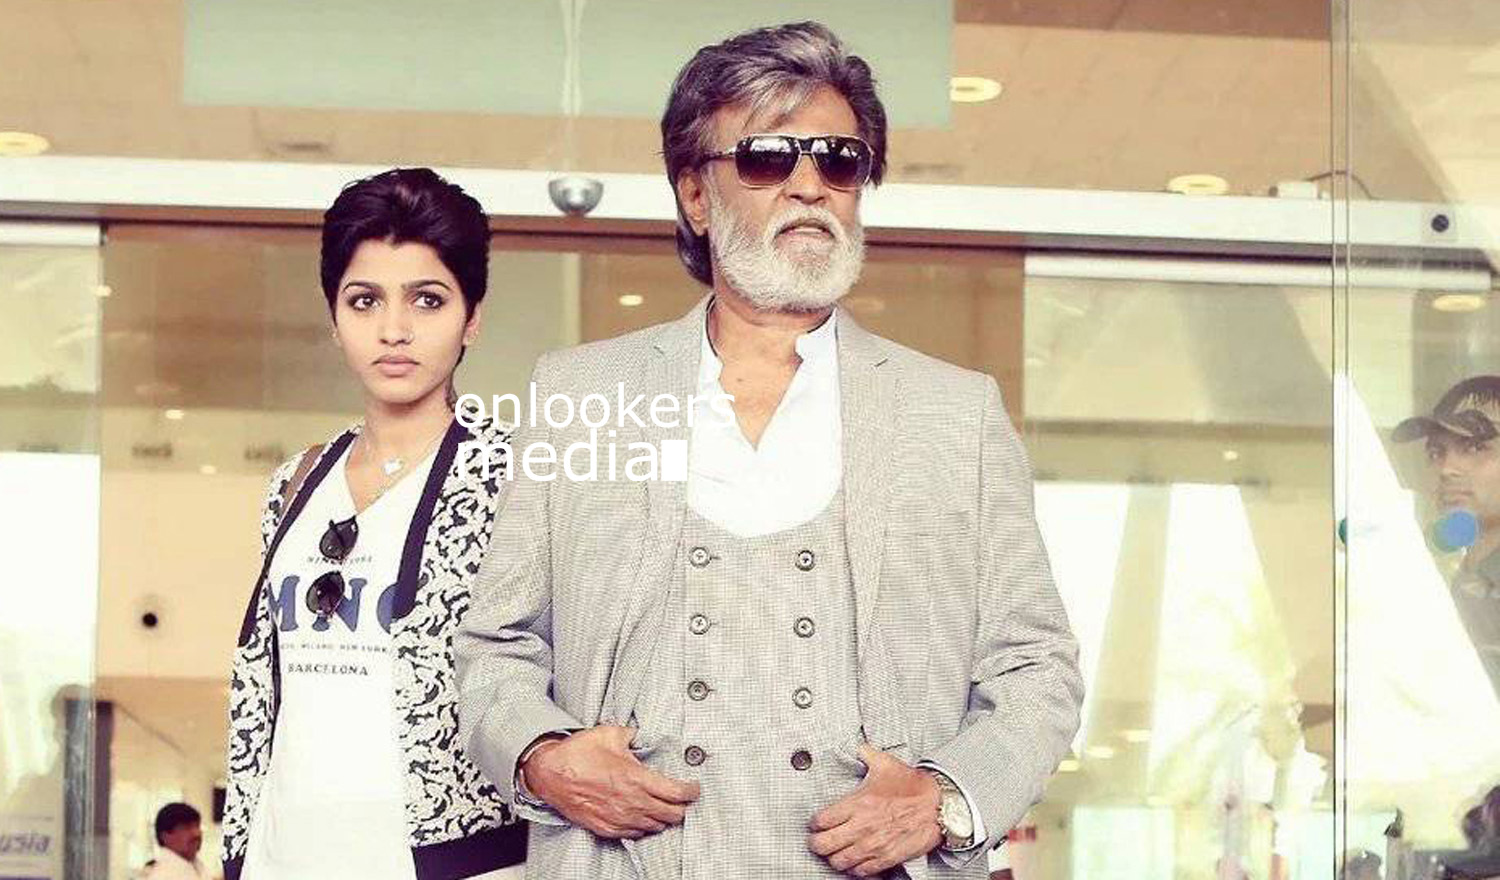 http://onlookersmedia.in/wp-content/uploads/2016/07/Rajinikanth-Kabali-stills-photos-images-pics-20.jpg